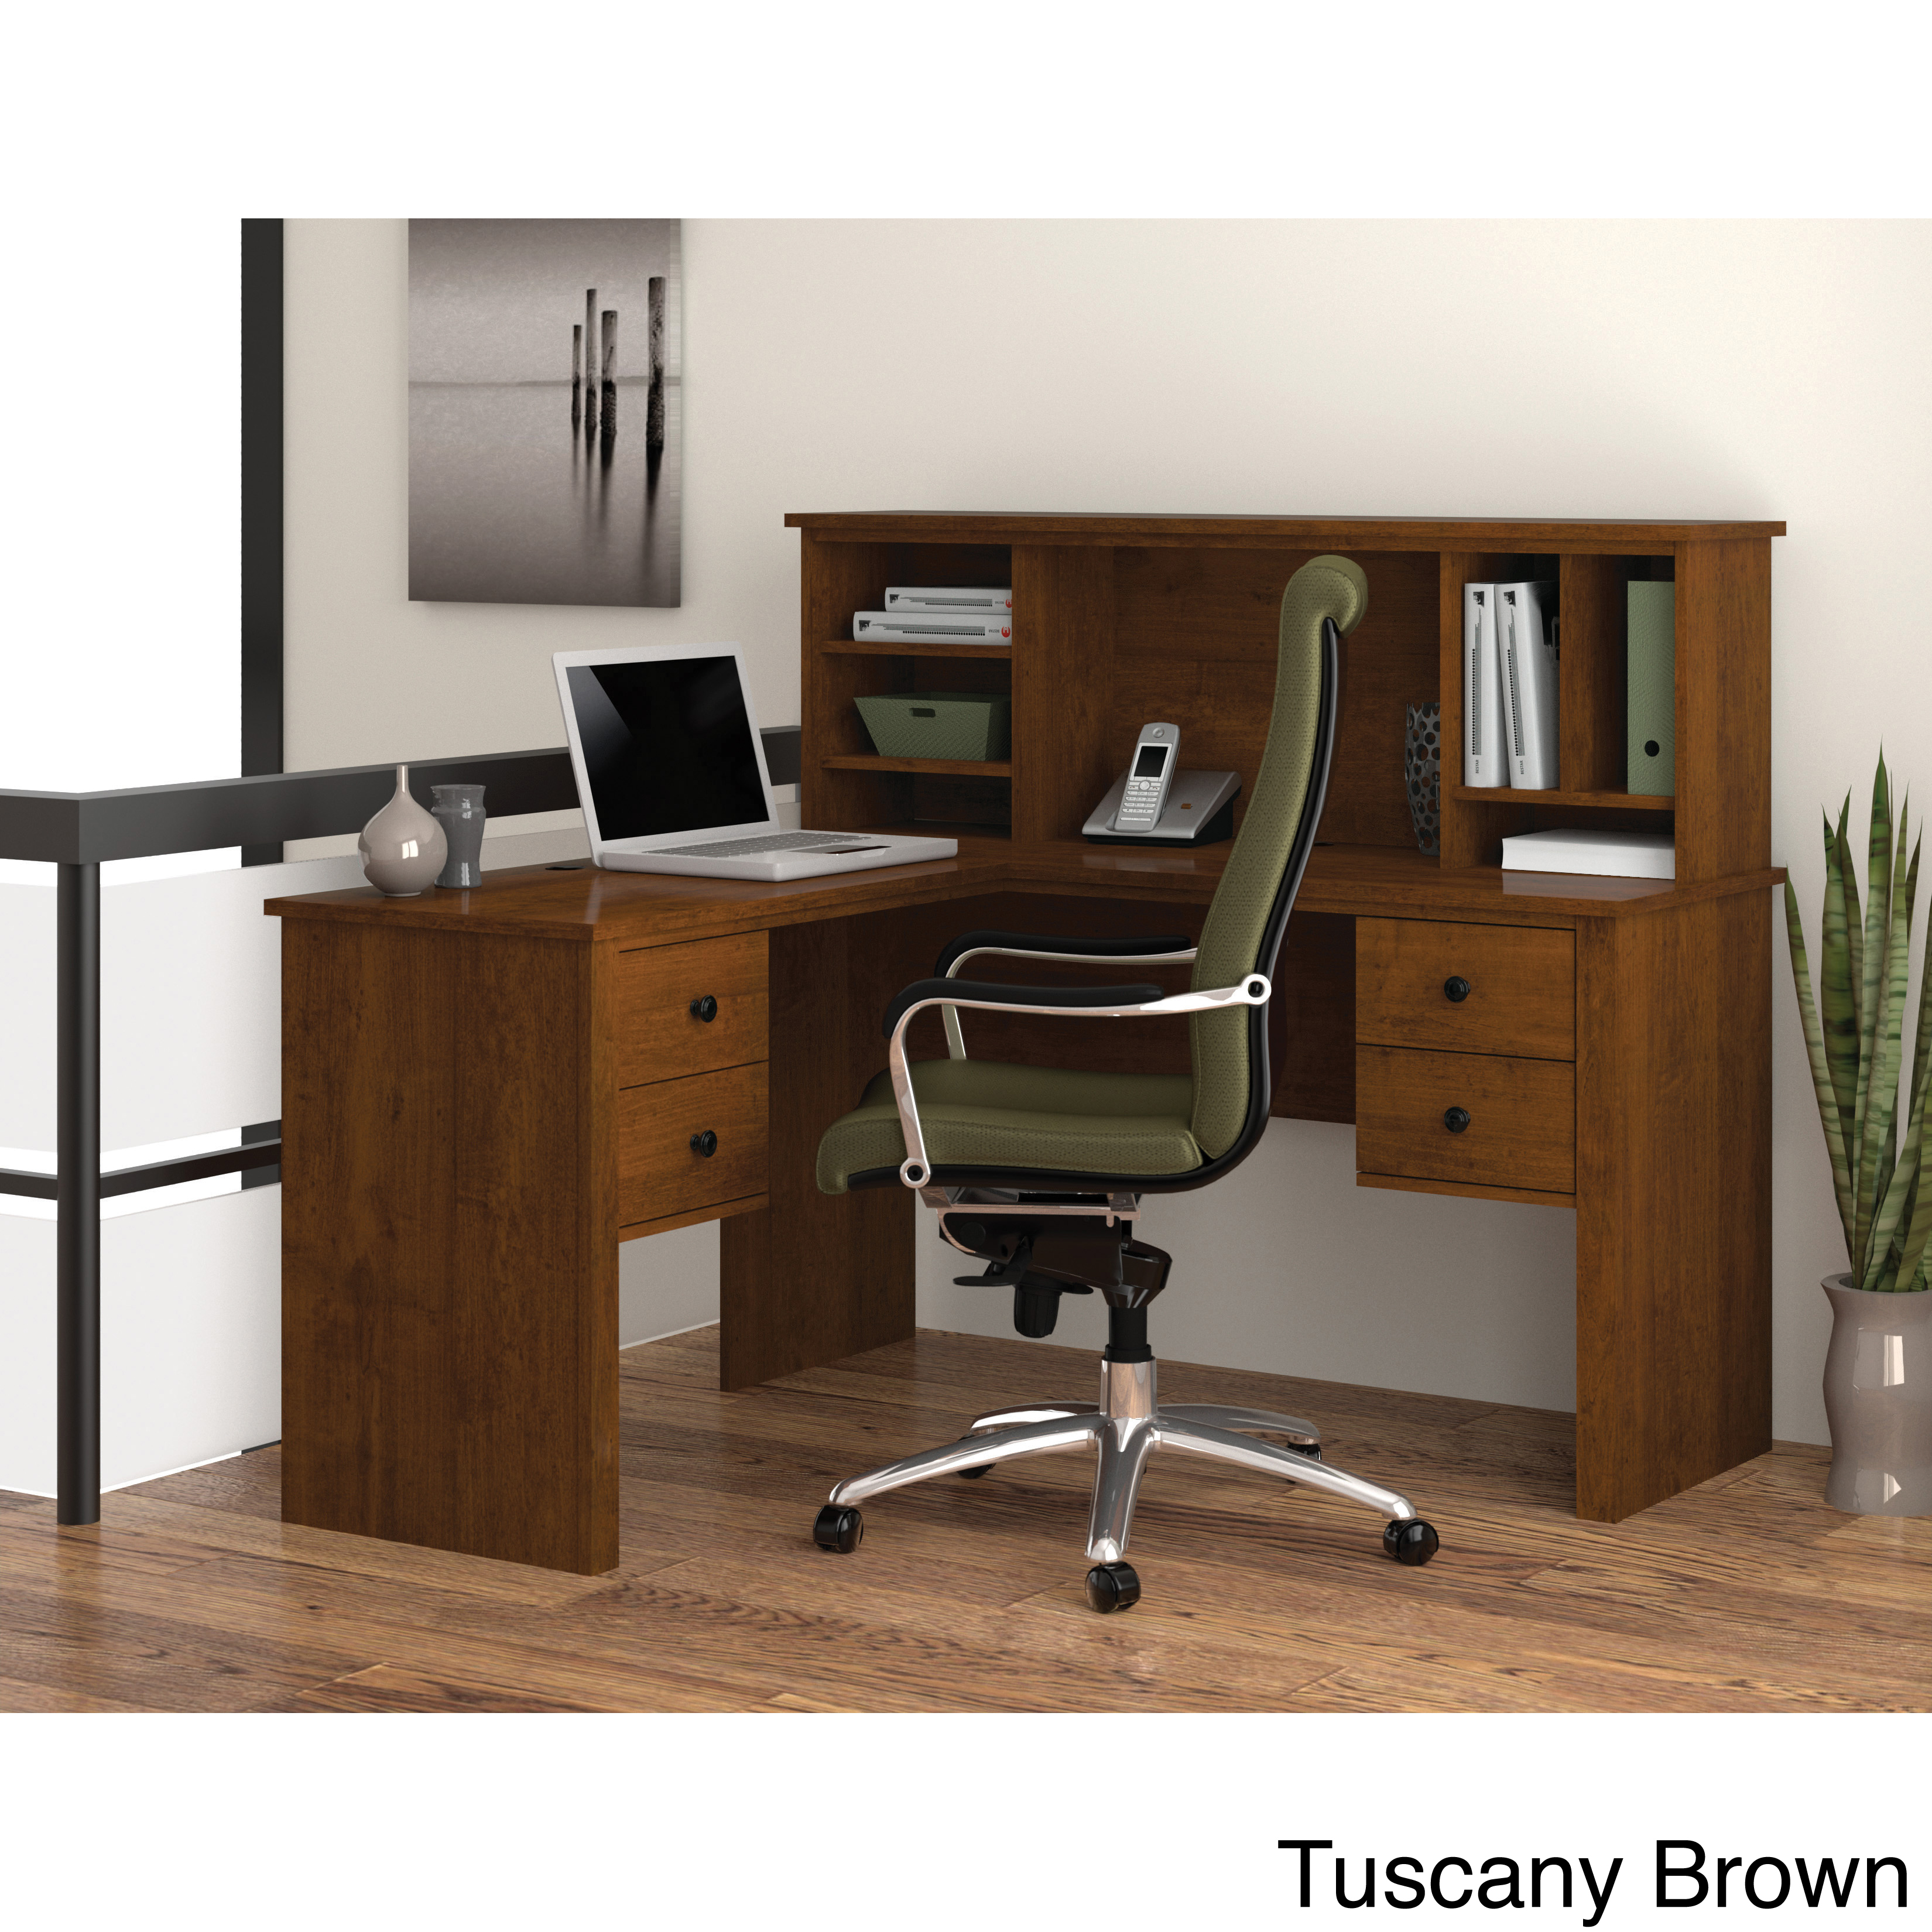 Bestar Connexion Brown Laminate L shaped desk with Hutch and drawer plus computer stand plus armchair for home office furniture ideas